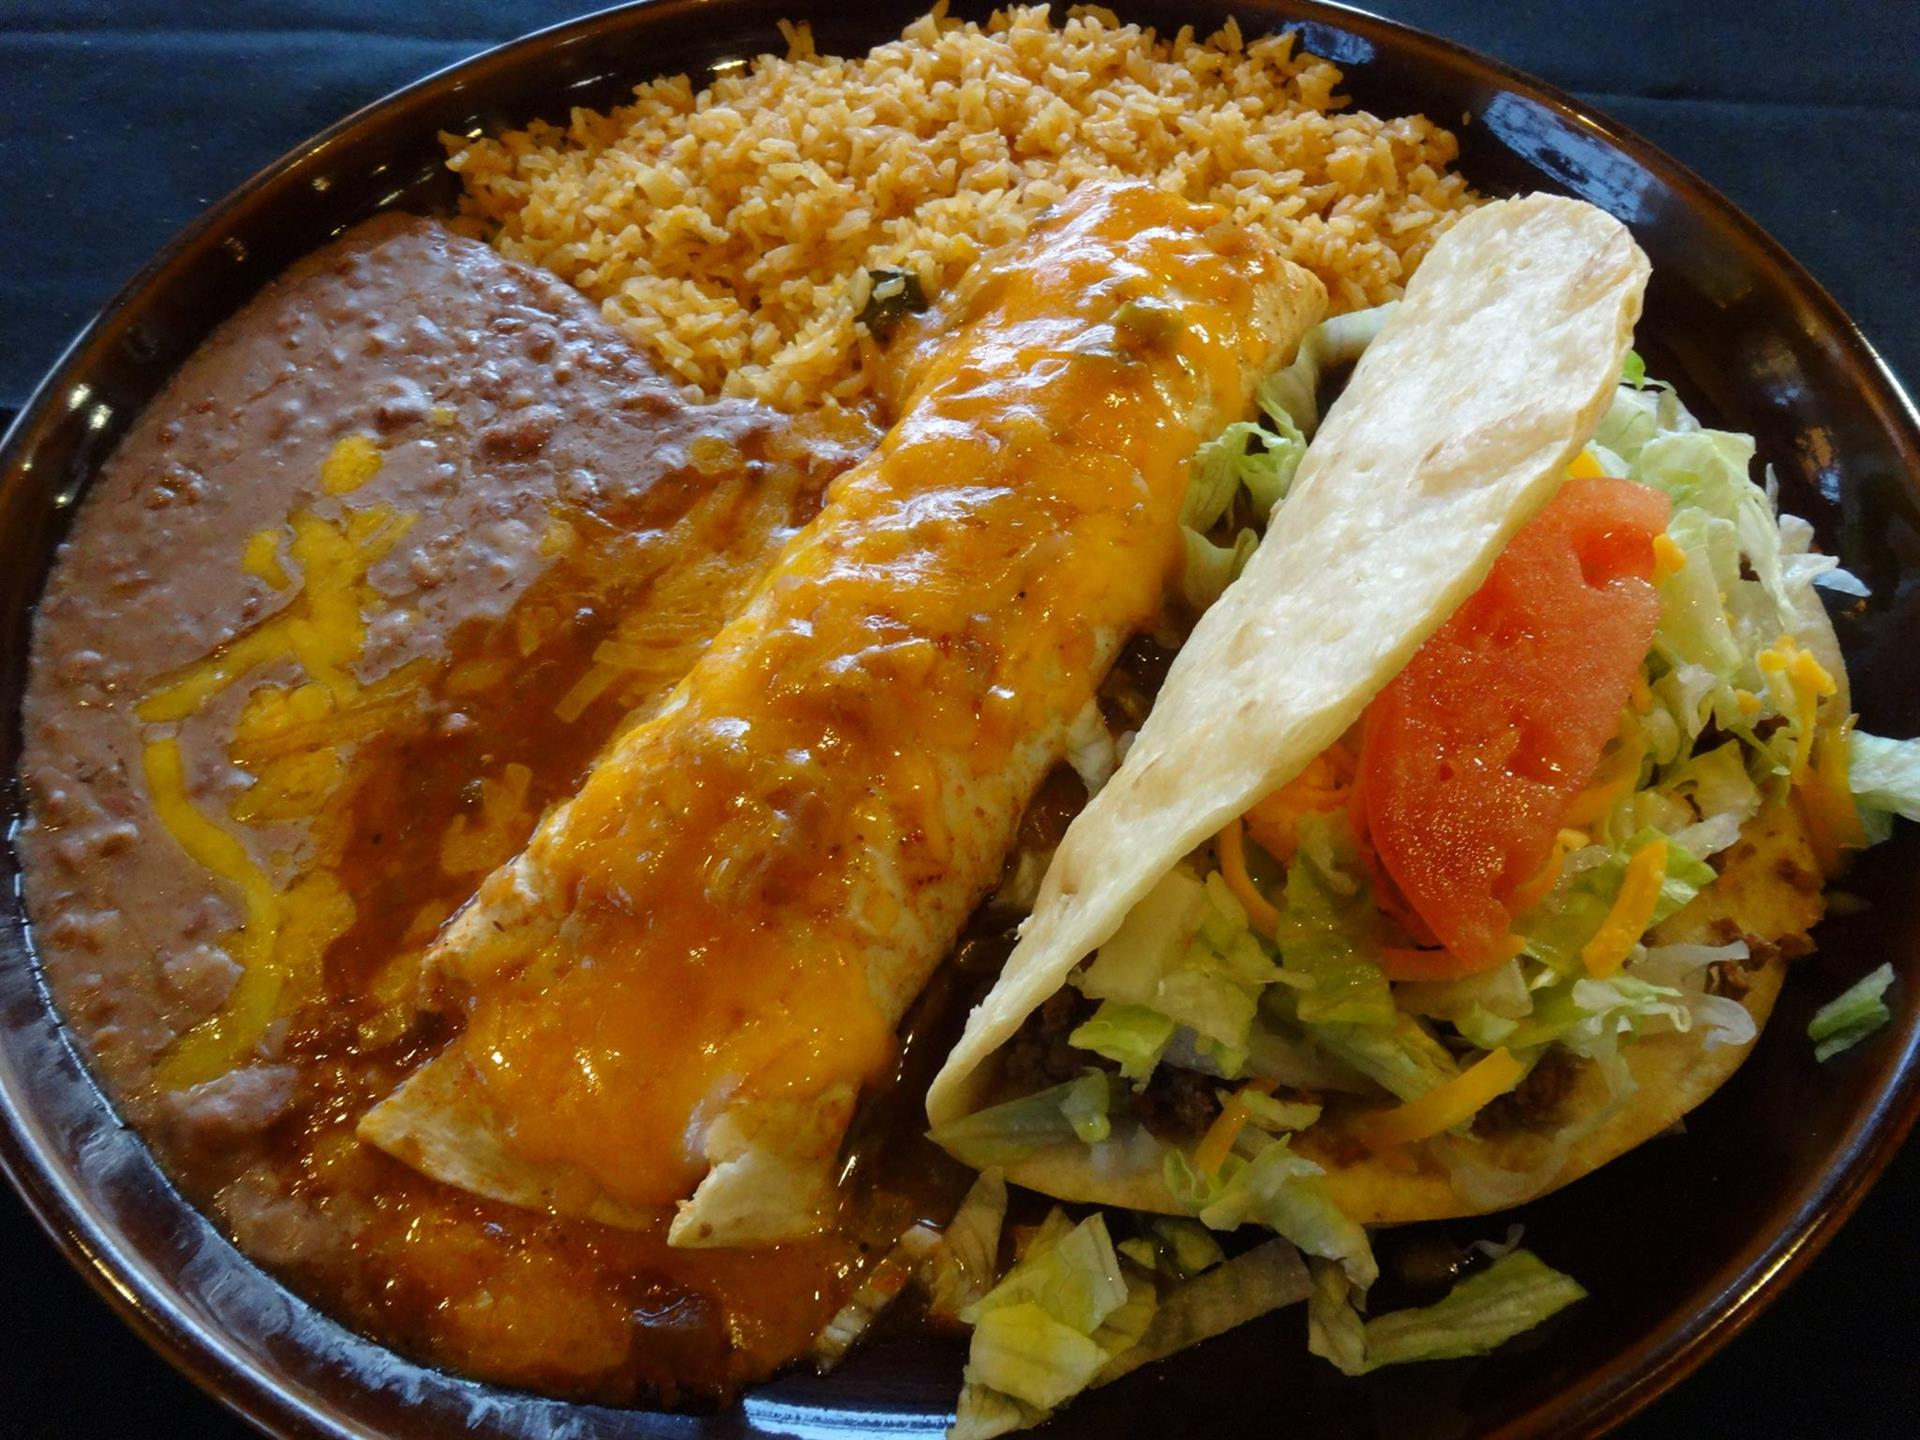 Enchilada covered with cheese. Taco with lettuce and tomato